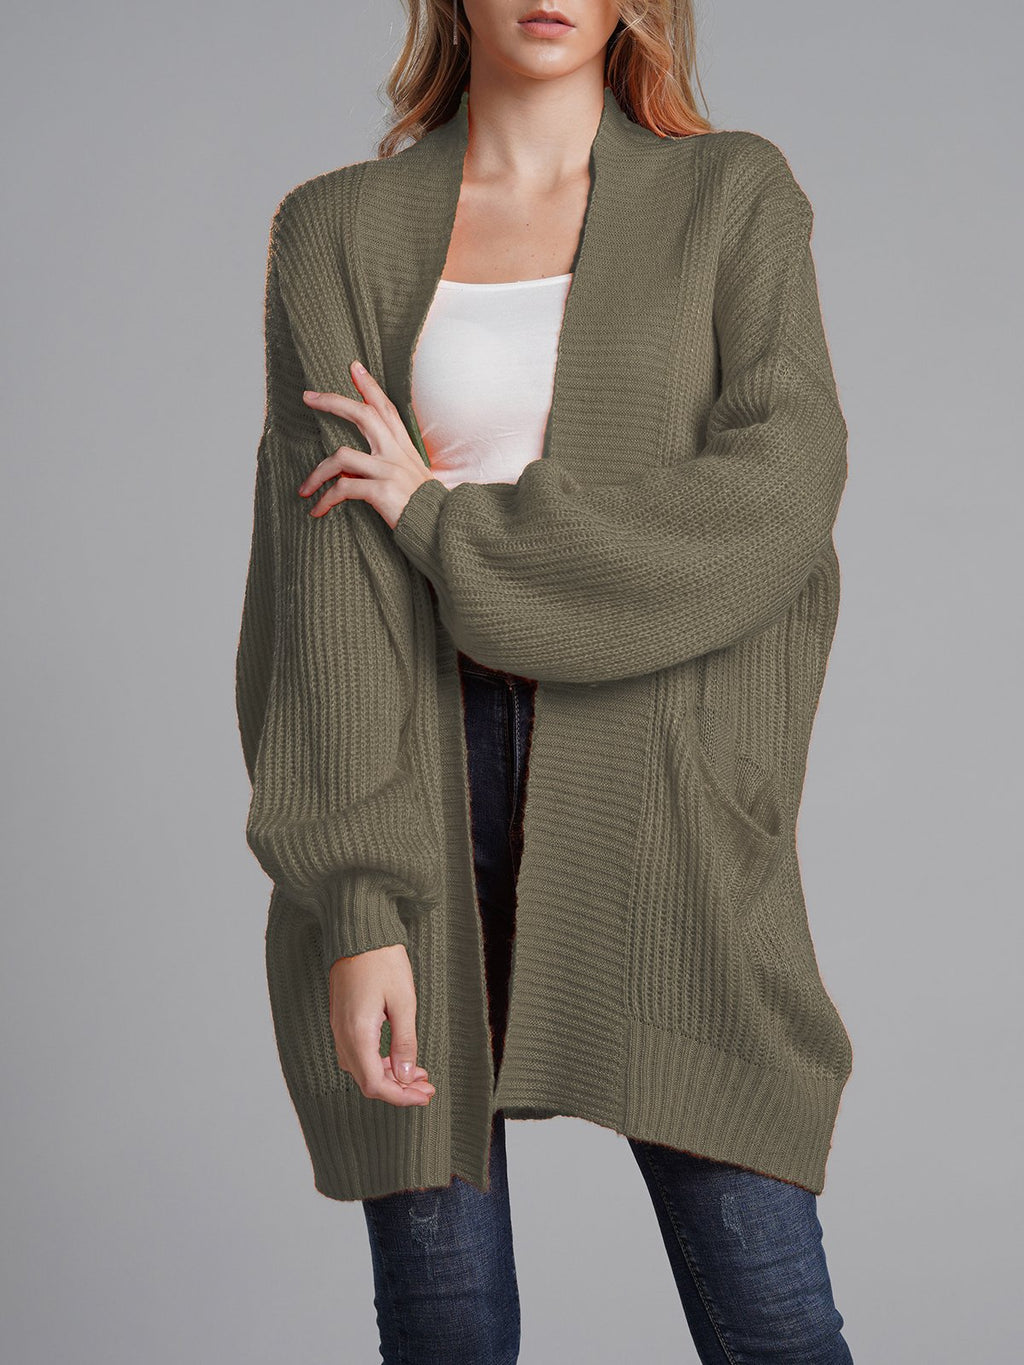 Officeladies Casual Knit Loose Round Neck Cardigan Sweater